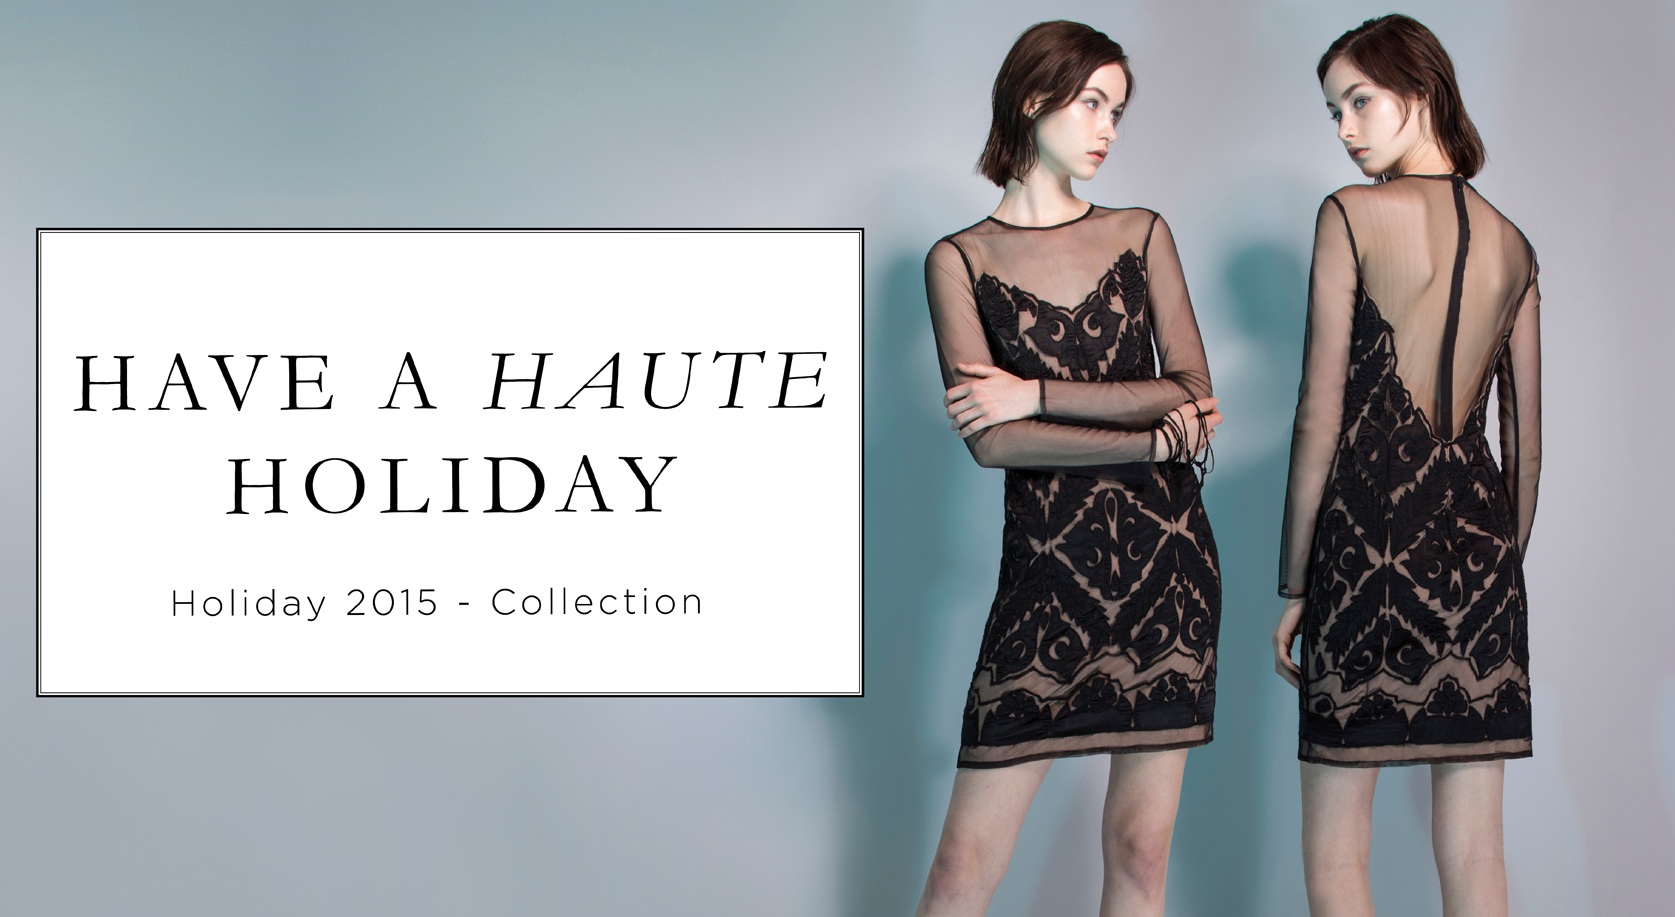 Have a Haute Holiday